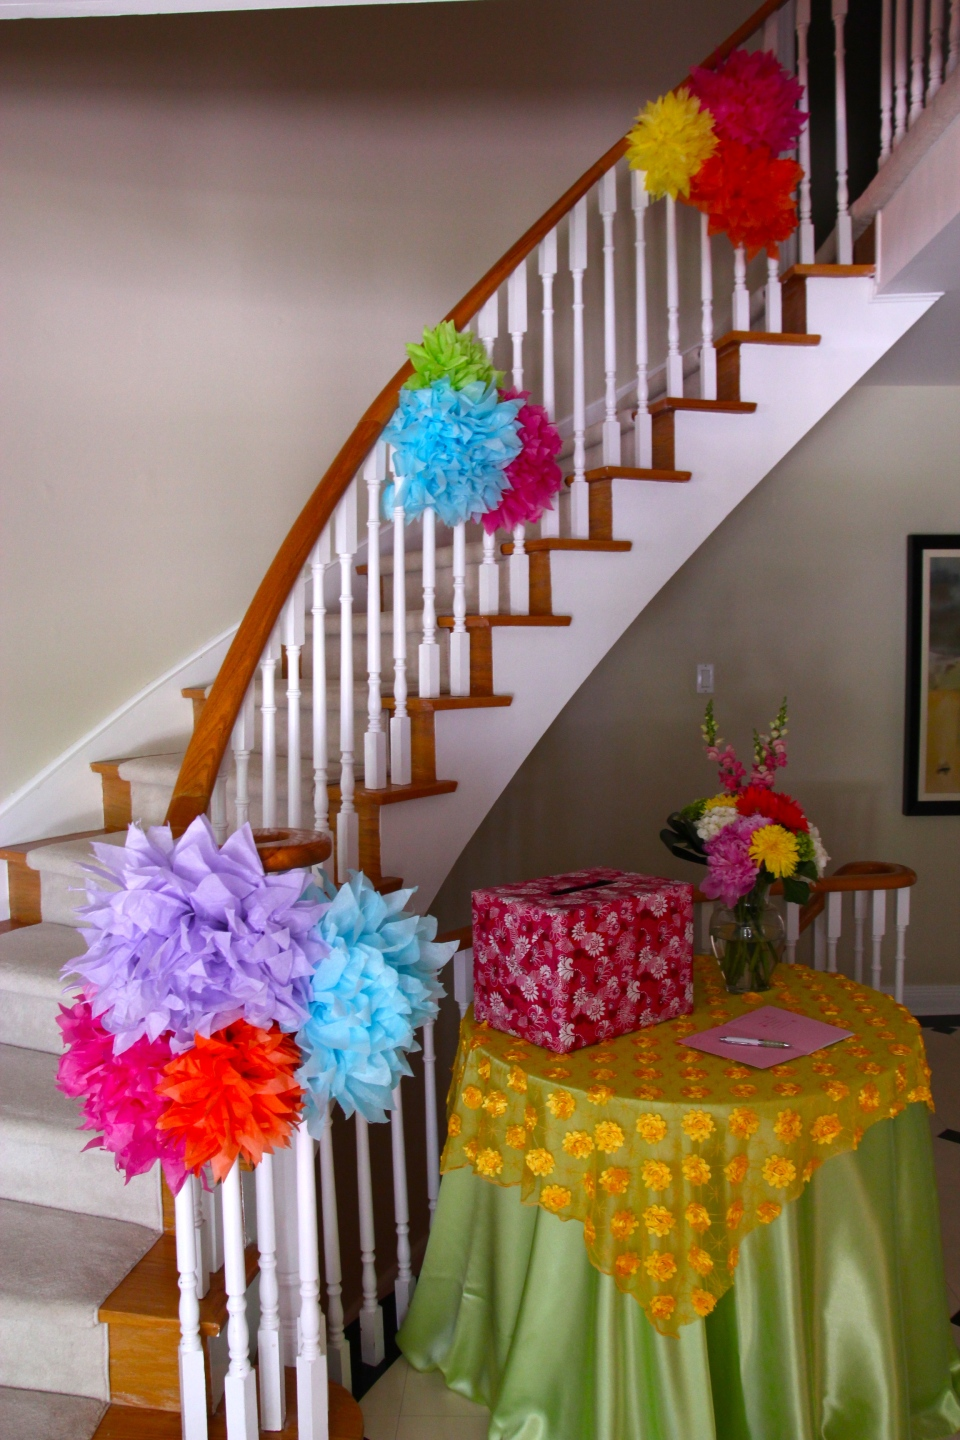 Bright and cheerful paper flowers for decor